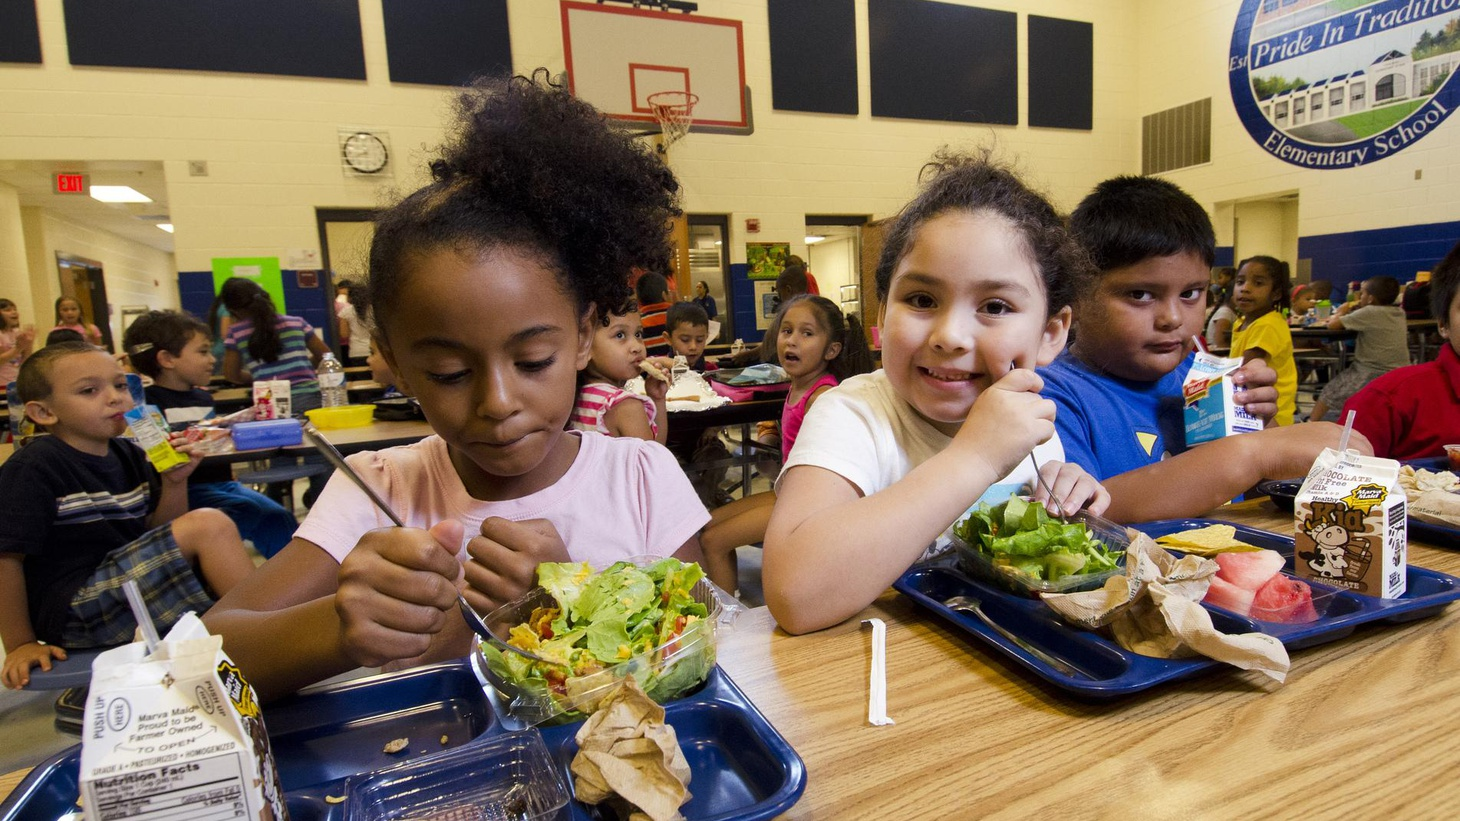 Americans are eating the wrong foods, with and obesity now a pandemic. But efforts to improve nutrition have created a furor over the role of government in our lives.